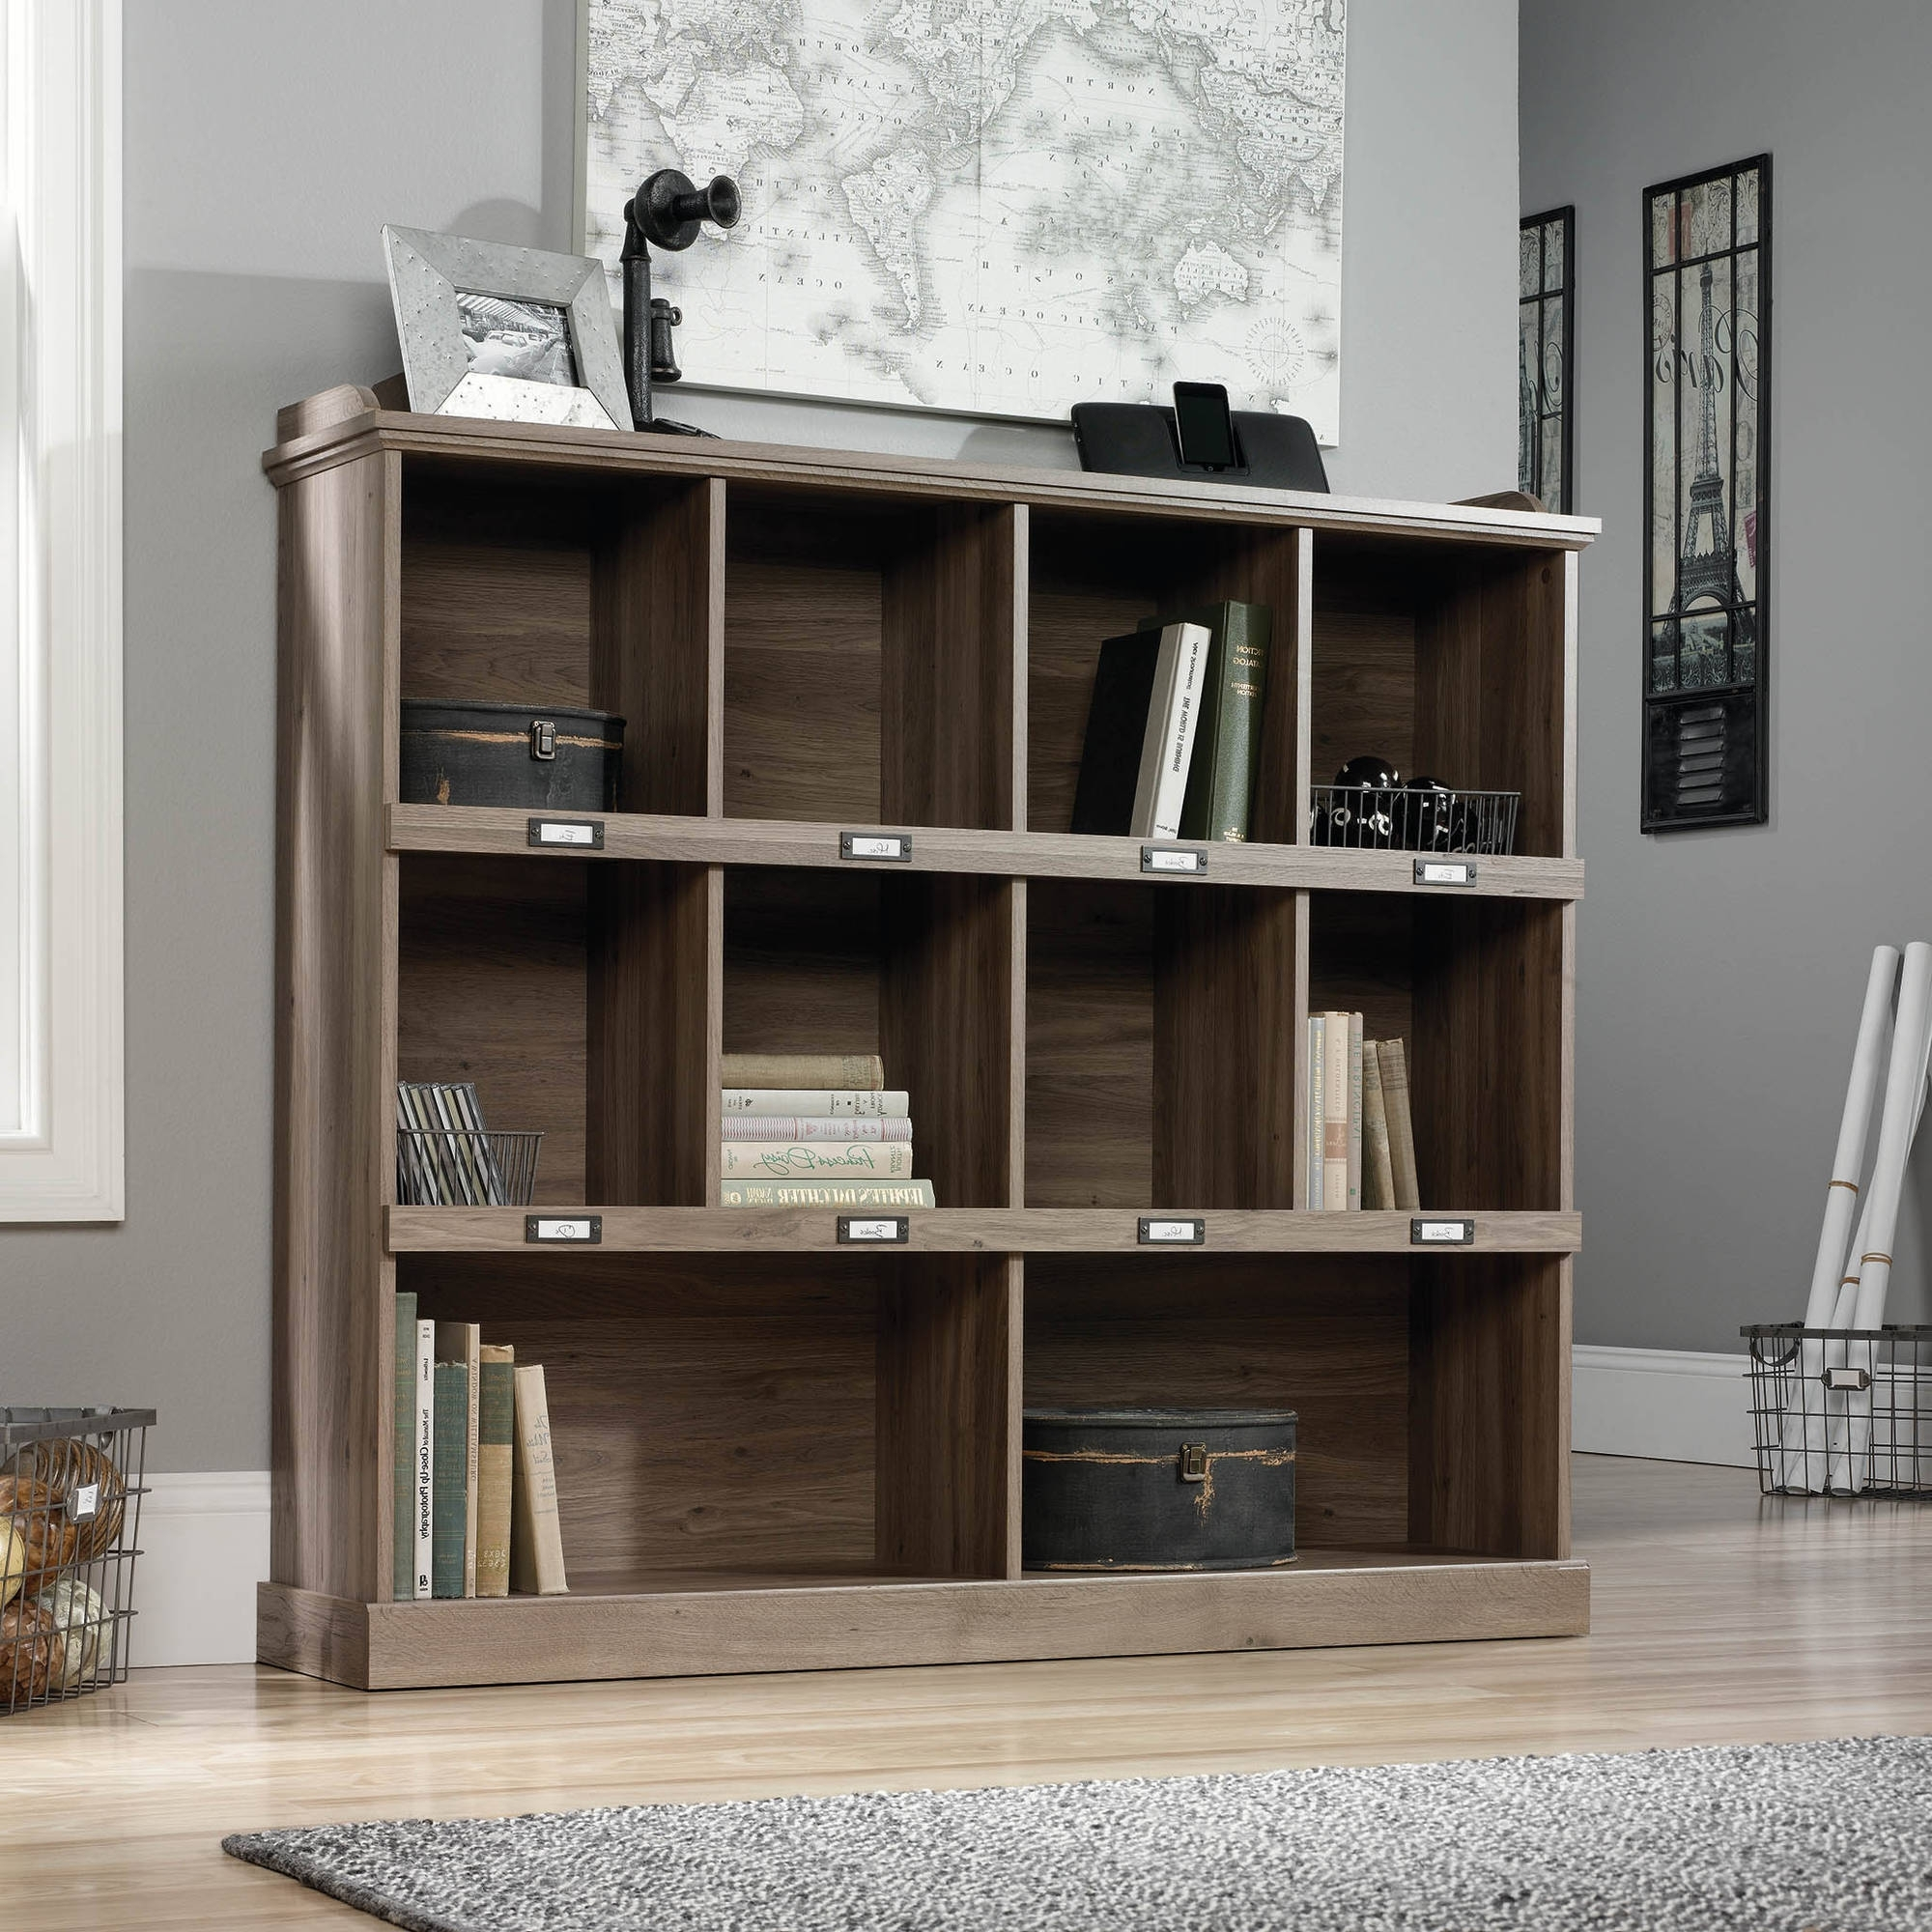 Trendy Sauder Bookcases – Walmart Inside Saunders Bookcases (View 14 of 15)